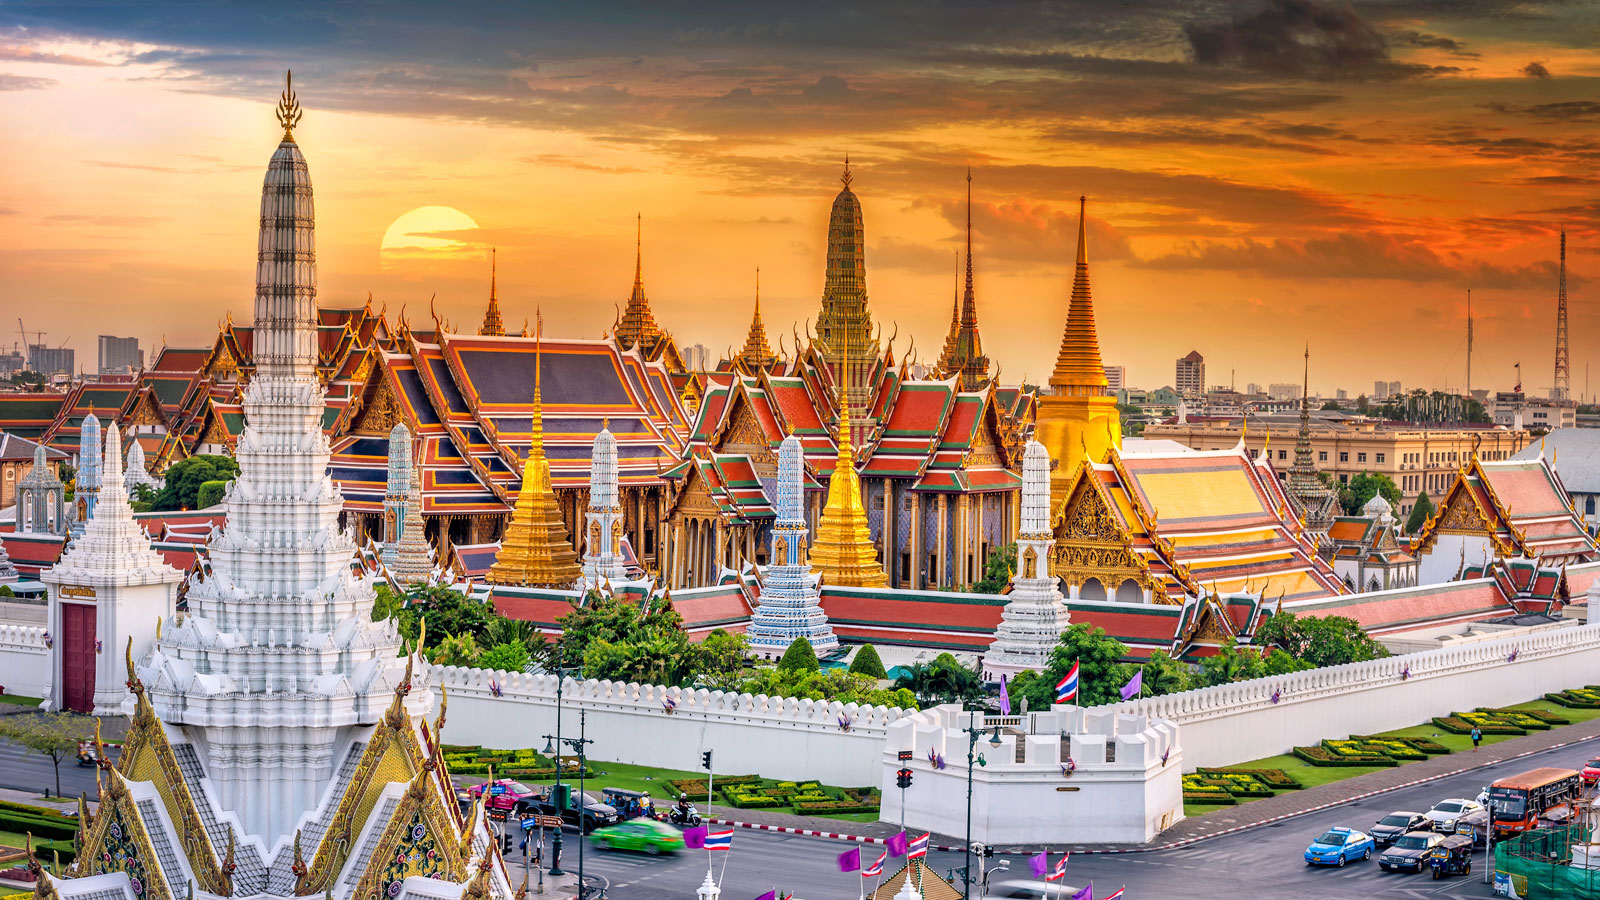 bangkok grand palace, one of the best things to do on Bangkok Pattaya tour